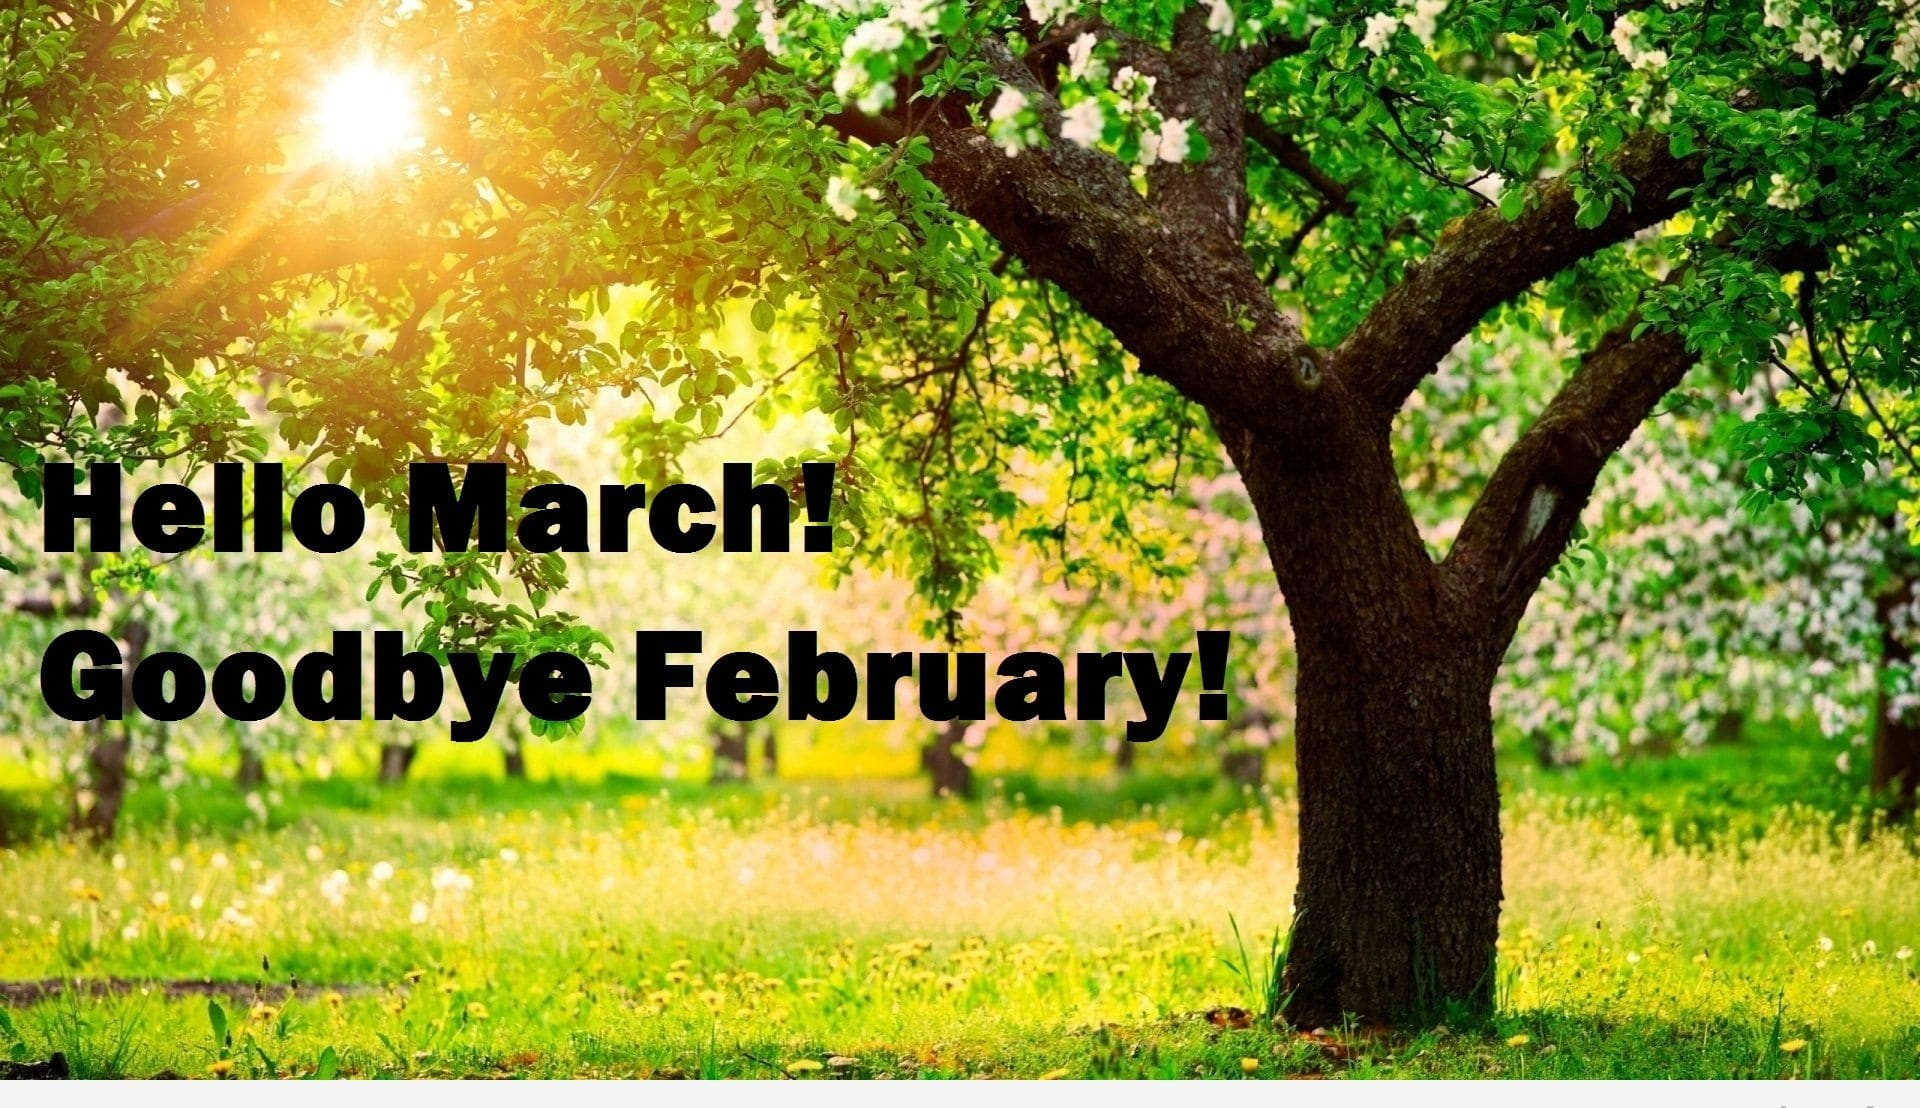 Hello March Goodbye February Quotes Template